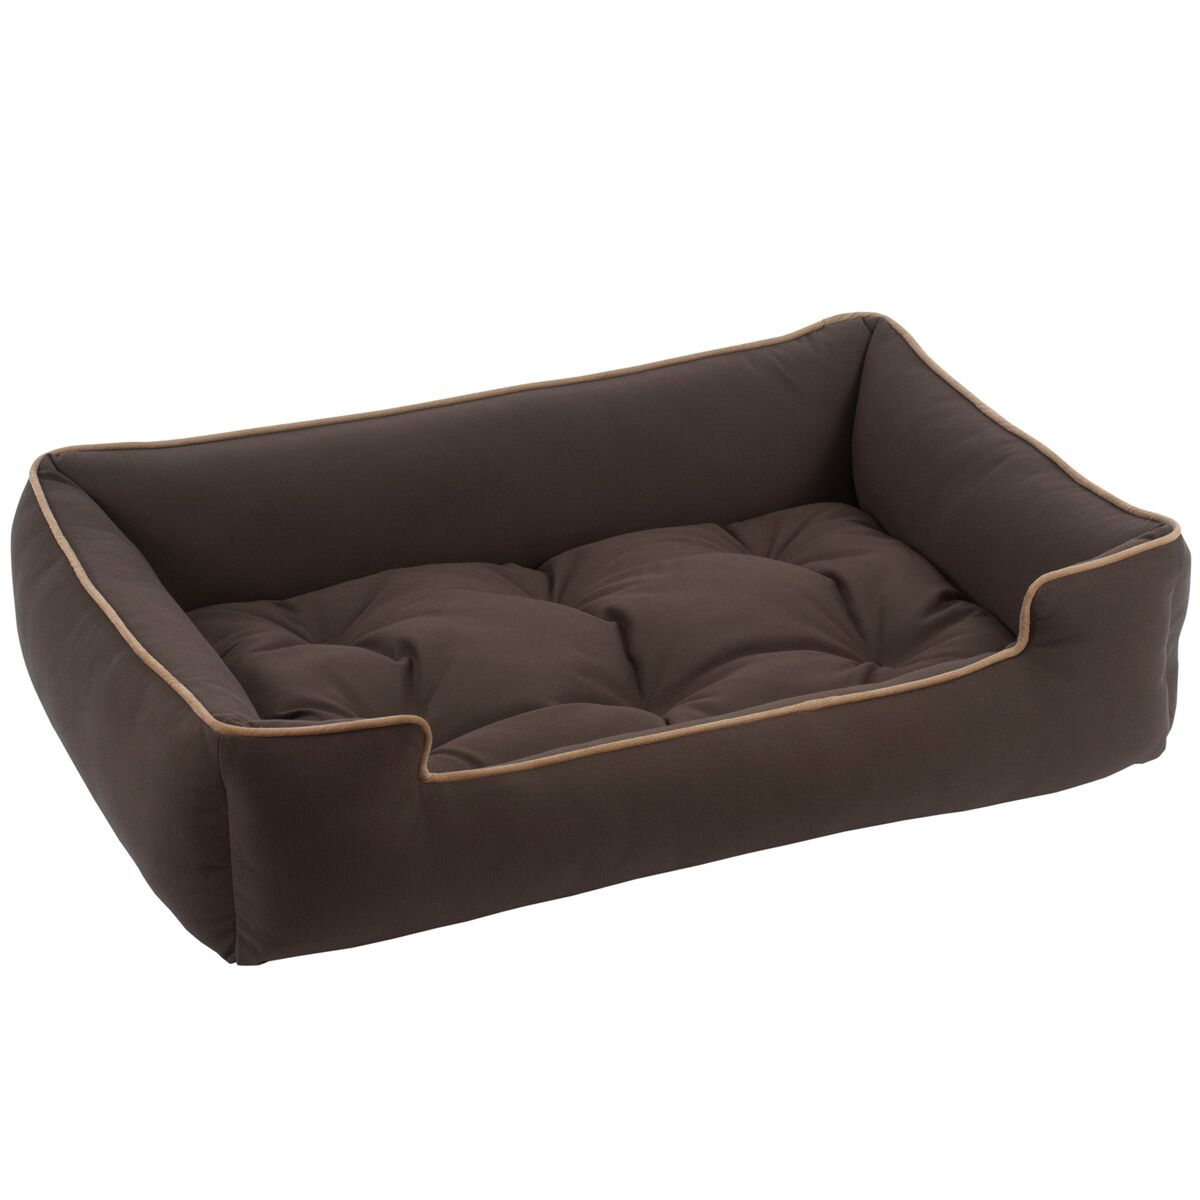 Sleeper Bolster Dog Bed Color: Chocolate, Size: Medium / Large (39